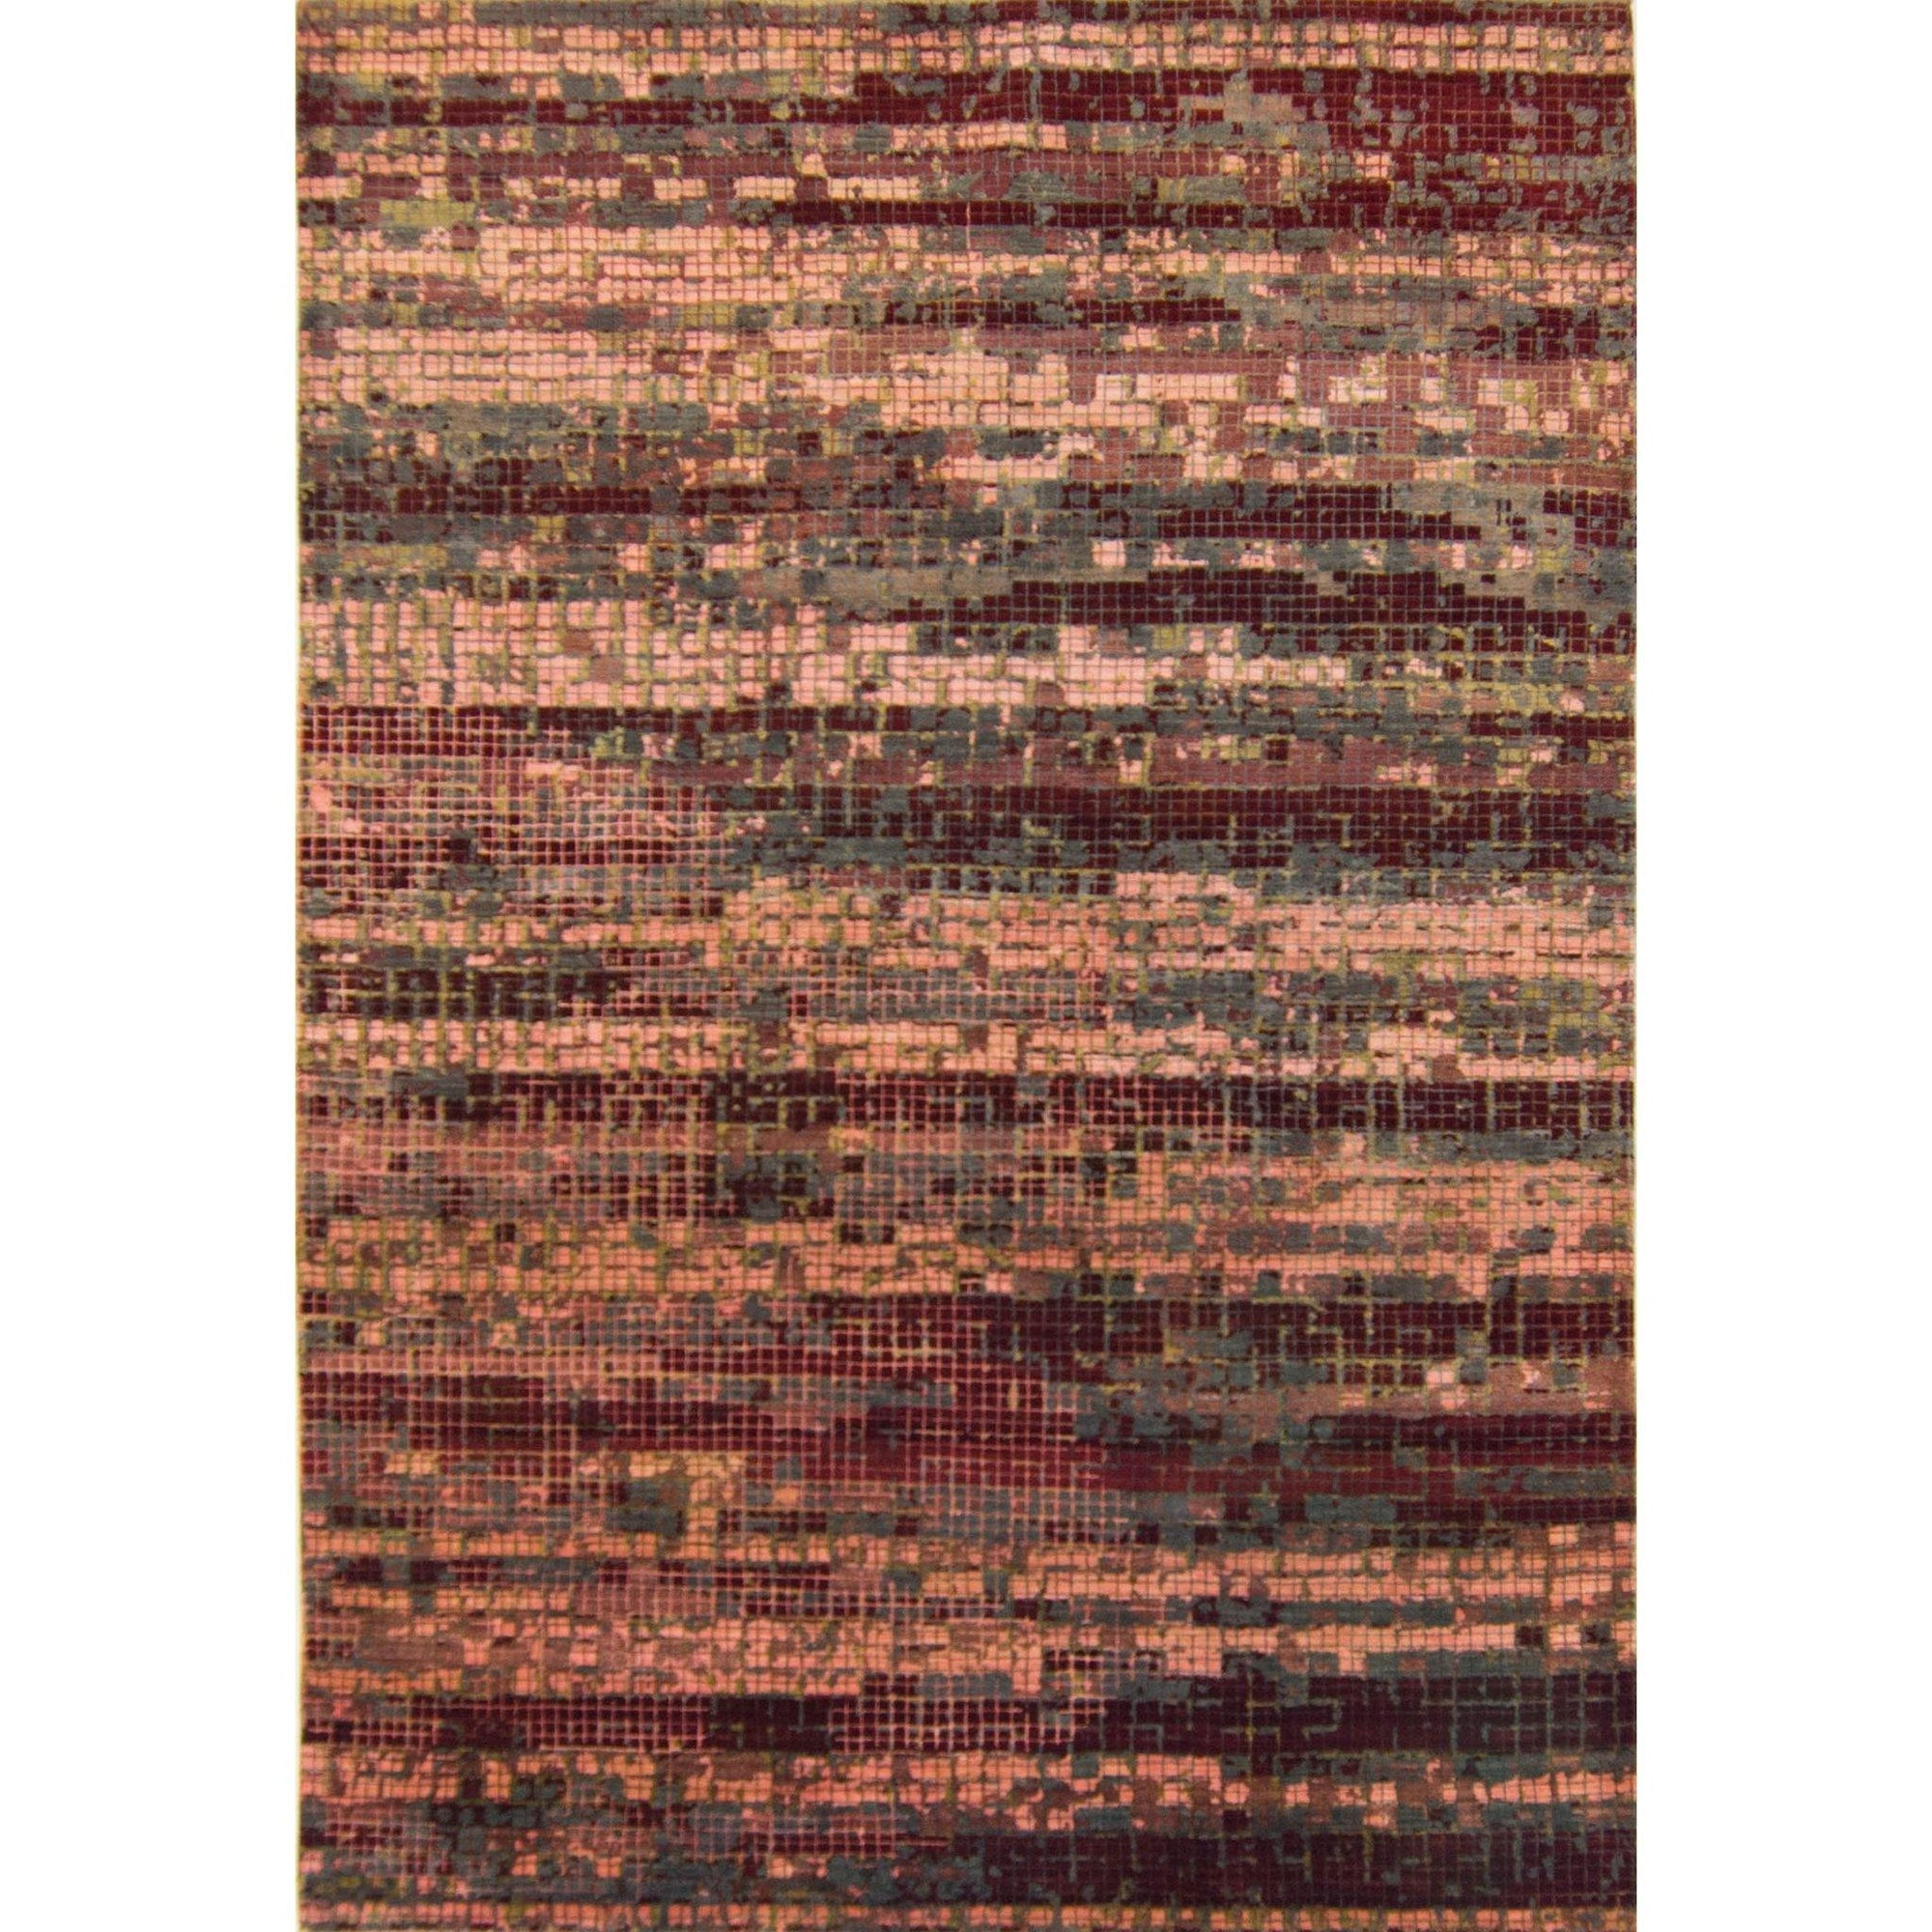 Hand-knotted Wool & Silk Contemporary Rug 202cm x 302cm Persian-Rug | House-of-Haghi | NewMarket | Auckland | NZ | Handmade Persian Rugs | Hand Knotted Persian Rugs